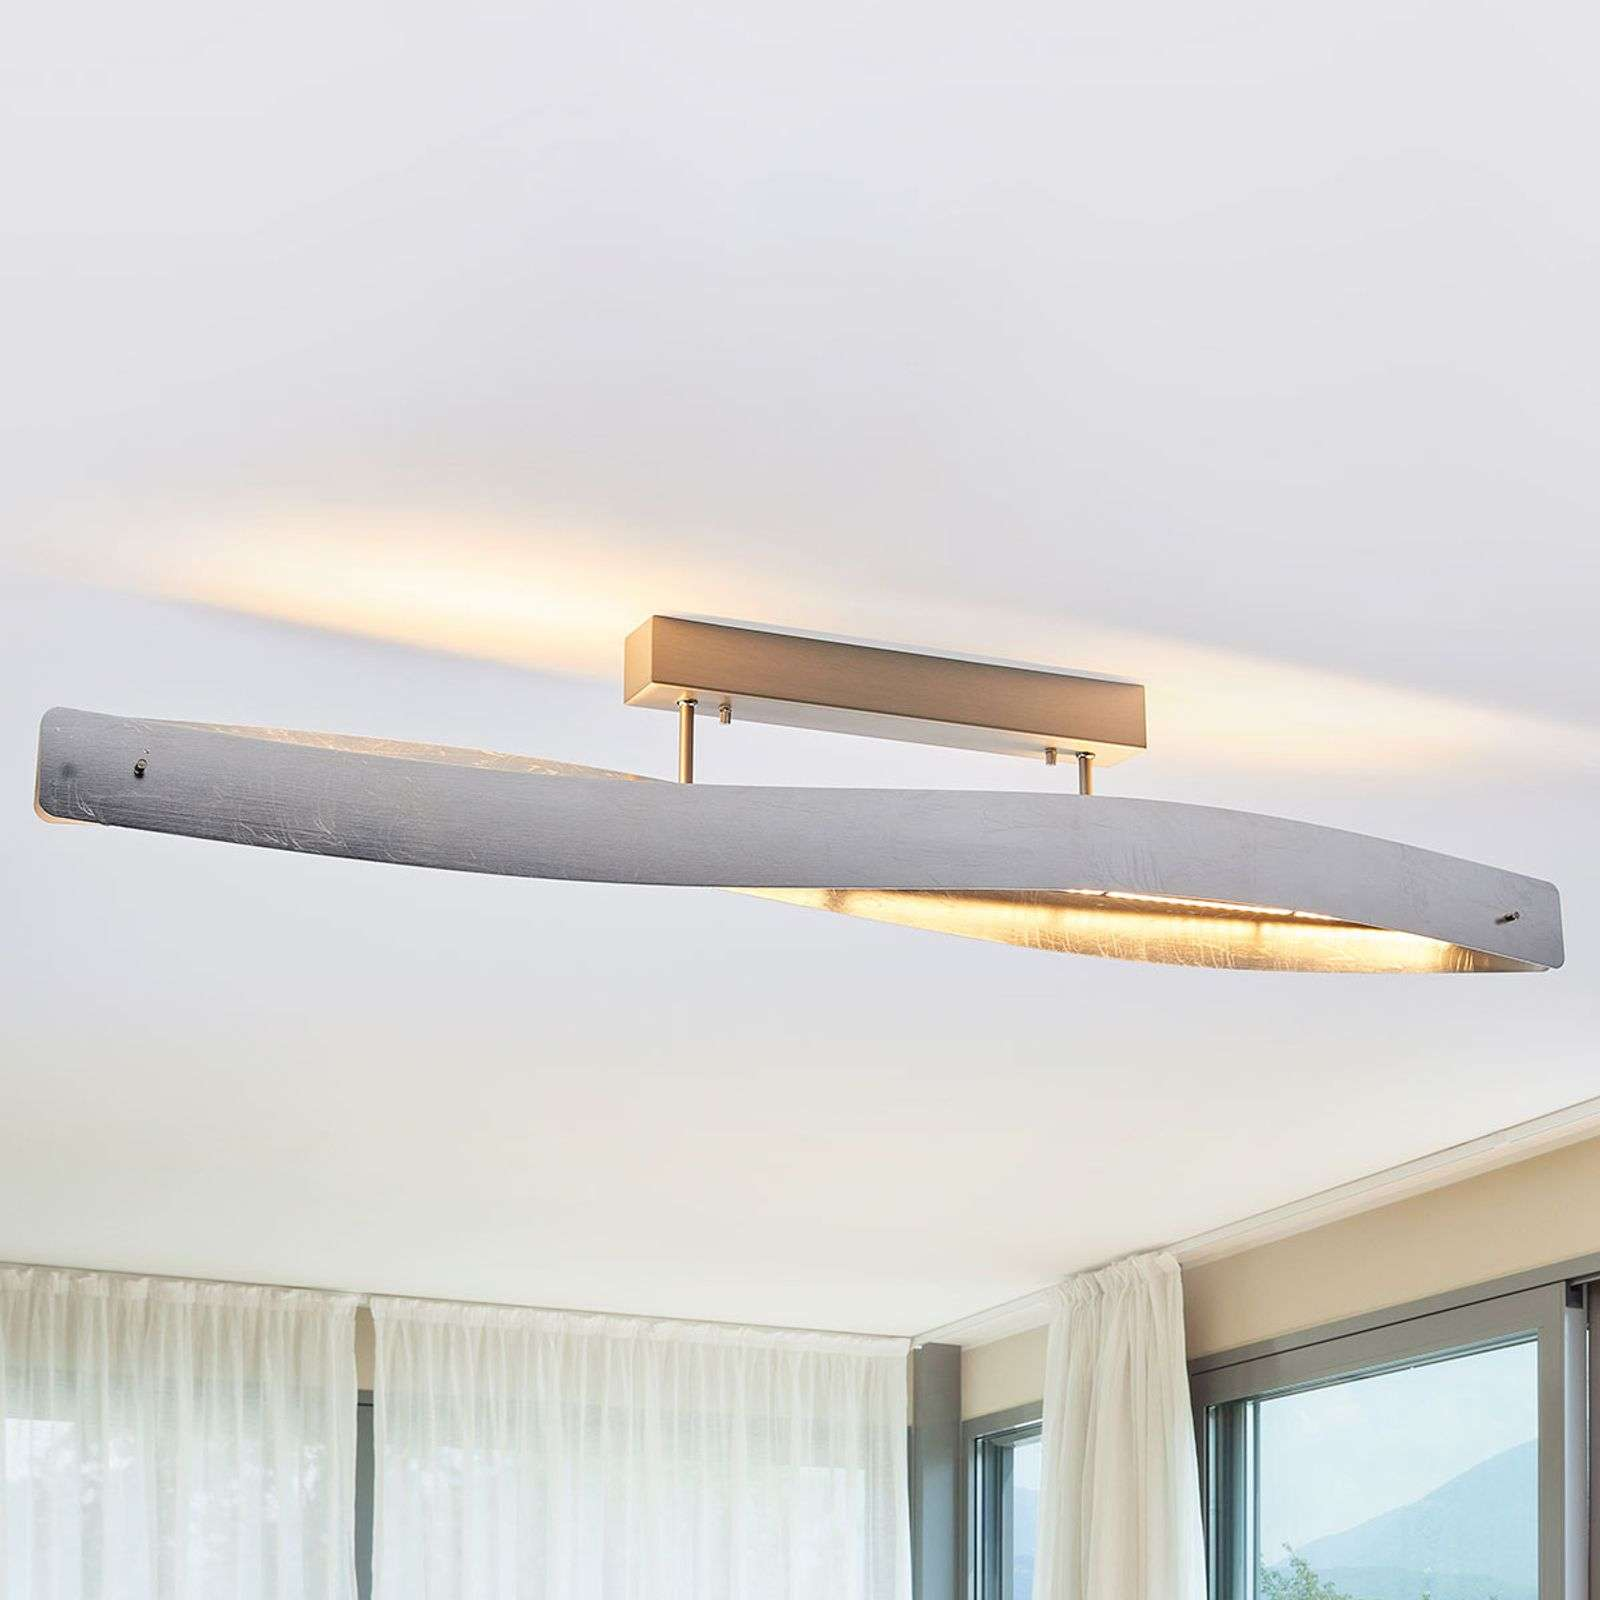 Plafonnier LED argenté brillant Lian, dimmable